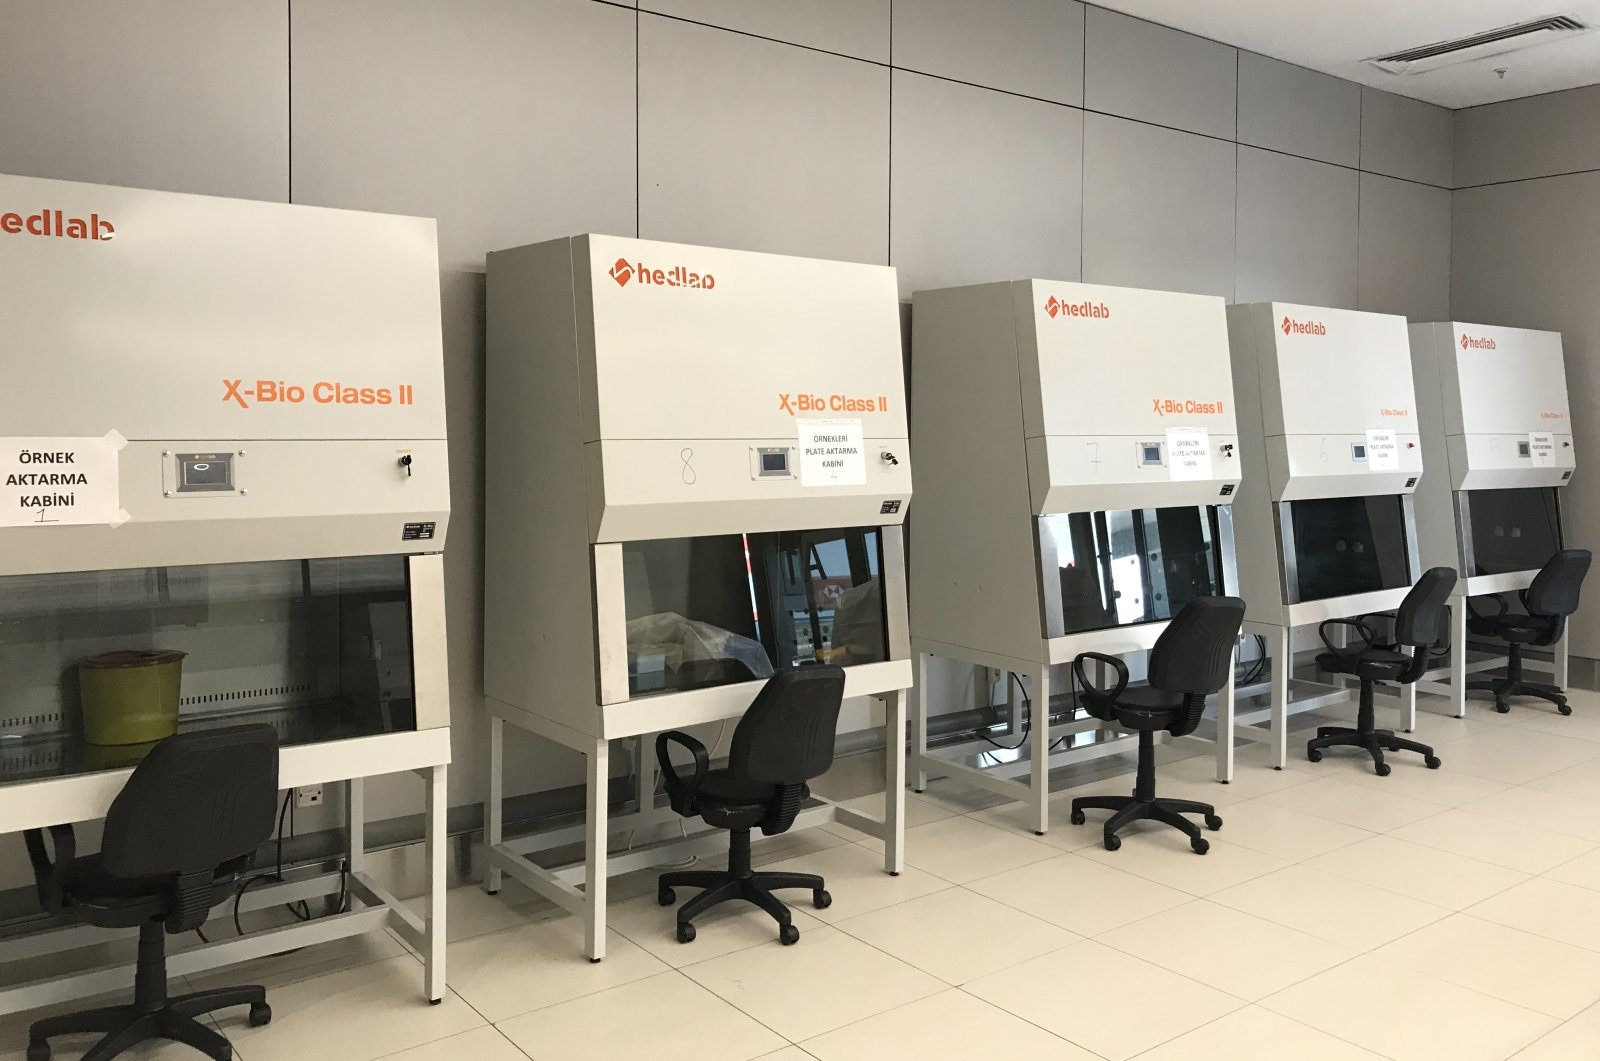 The cabins where samples are taken from passengers as part of coronavirus testing are seen at Istanbul Airport, Istanbul, Turkey, June 1, 2020. (AA Photo)